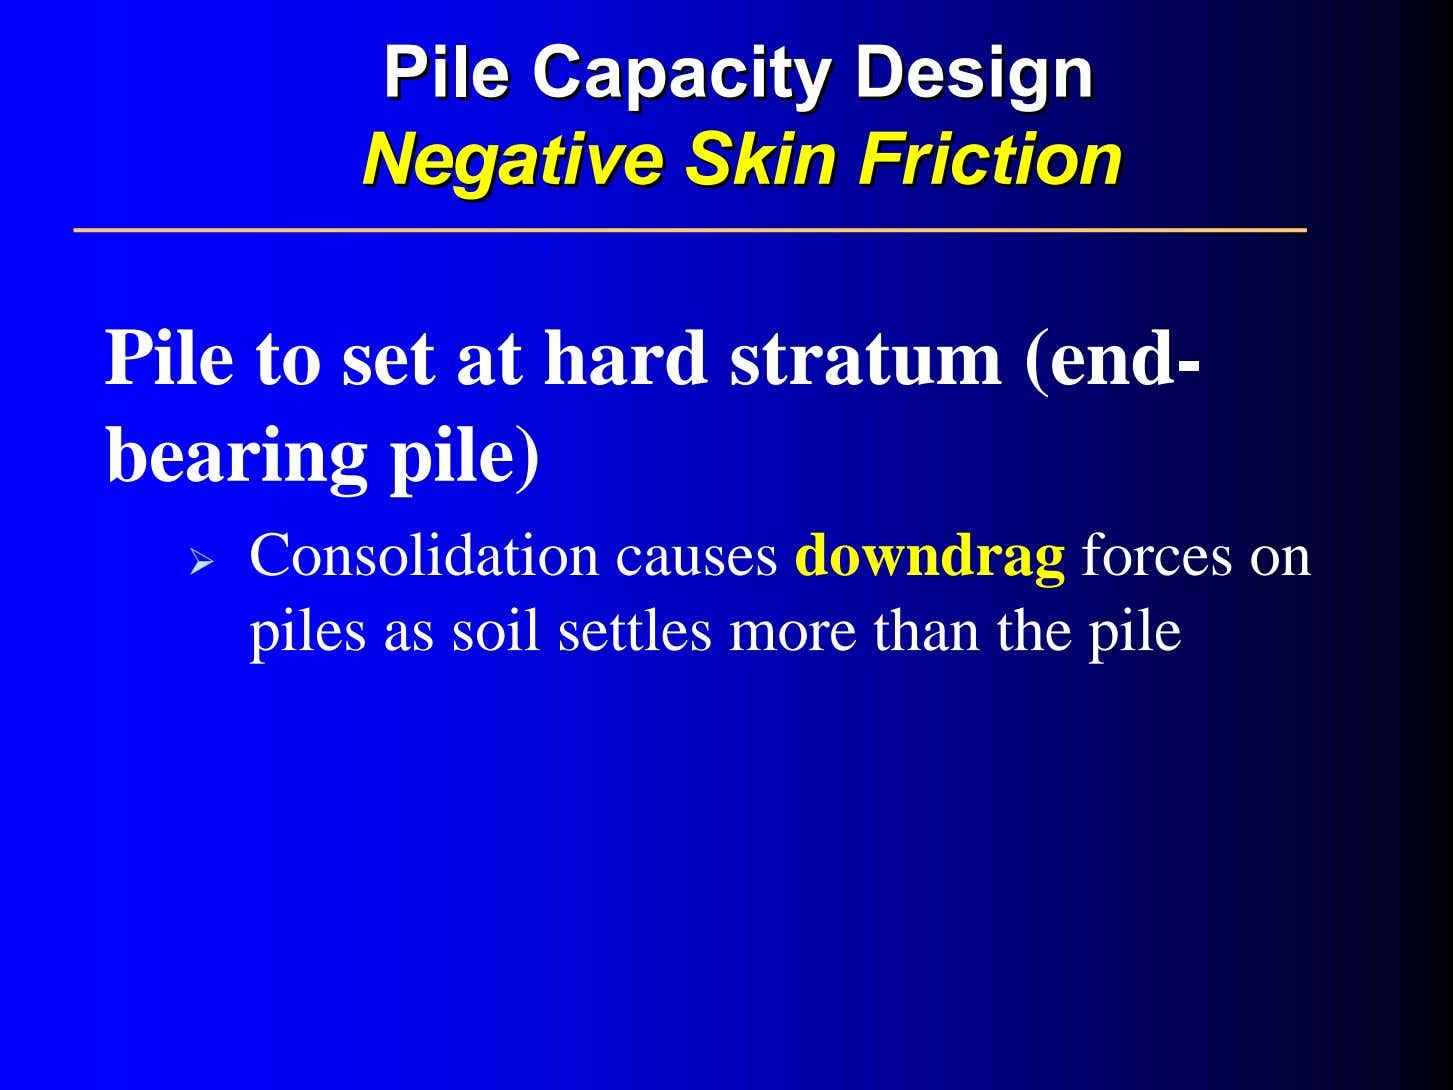 PilePile CapacityCapacity DesignDesign NegativeNegative SkinSkin FrictionFriction Pile to set at hard stratum (end-